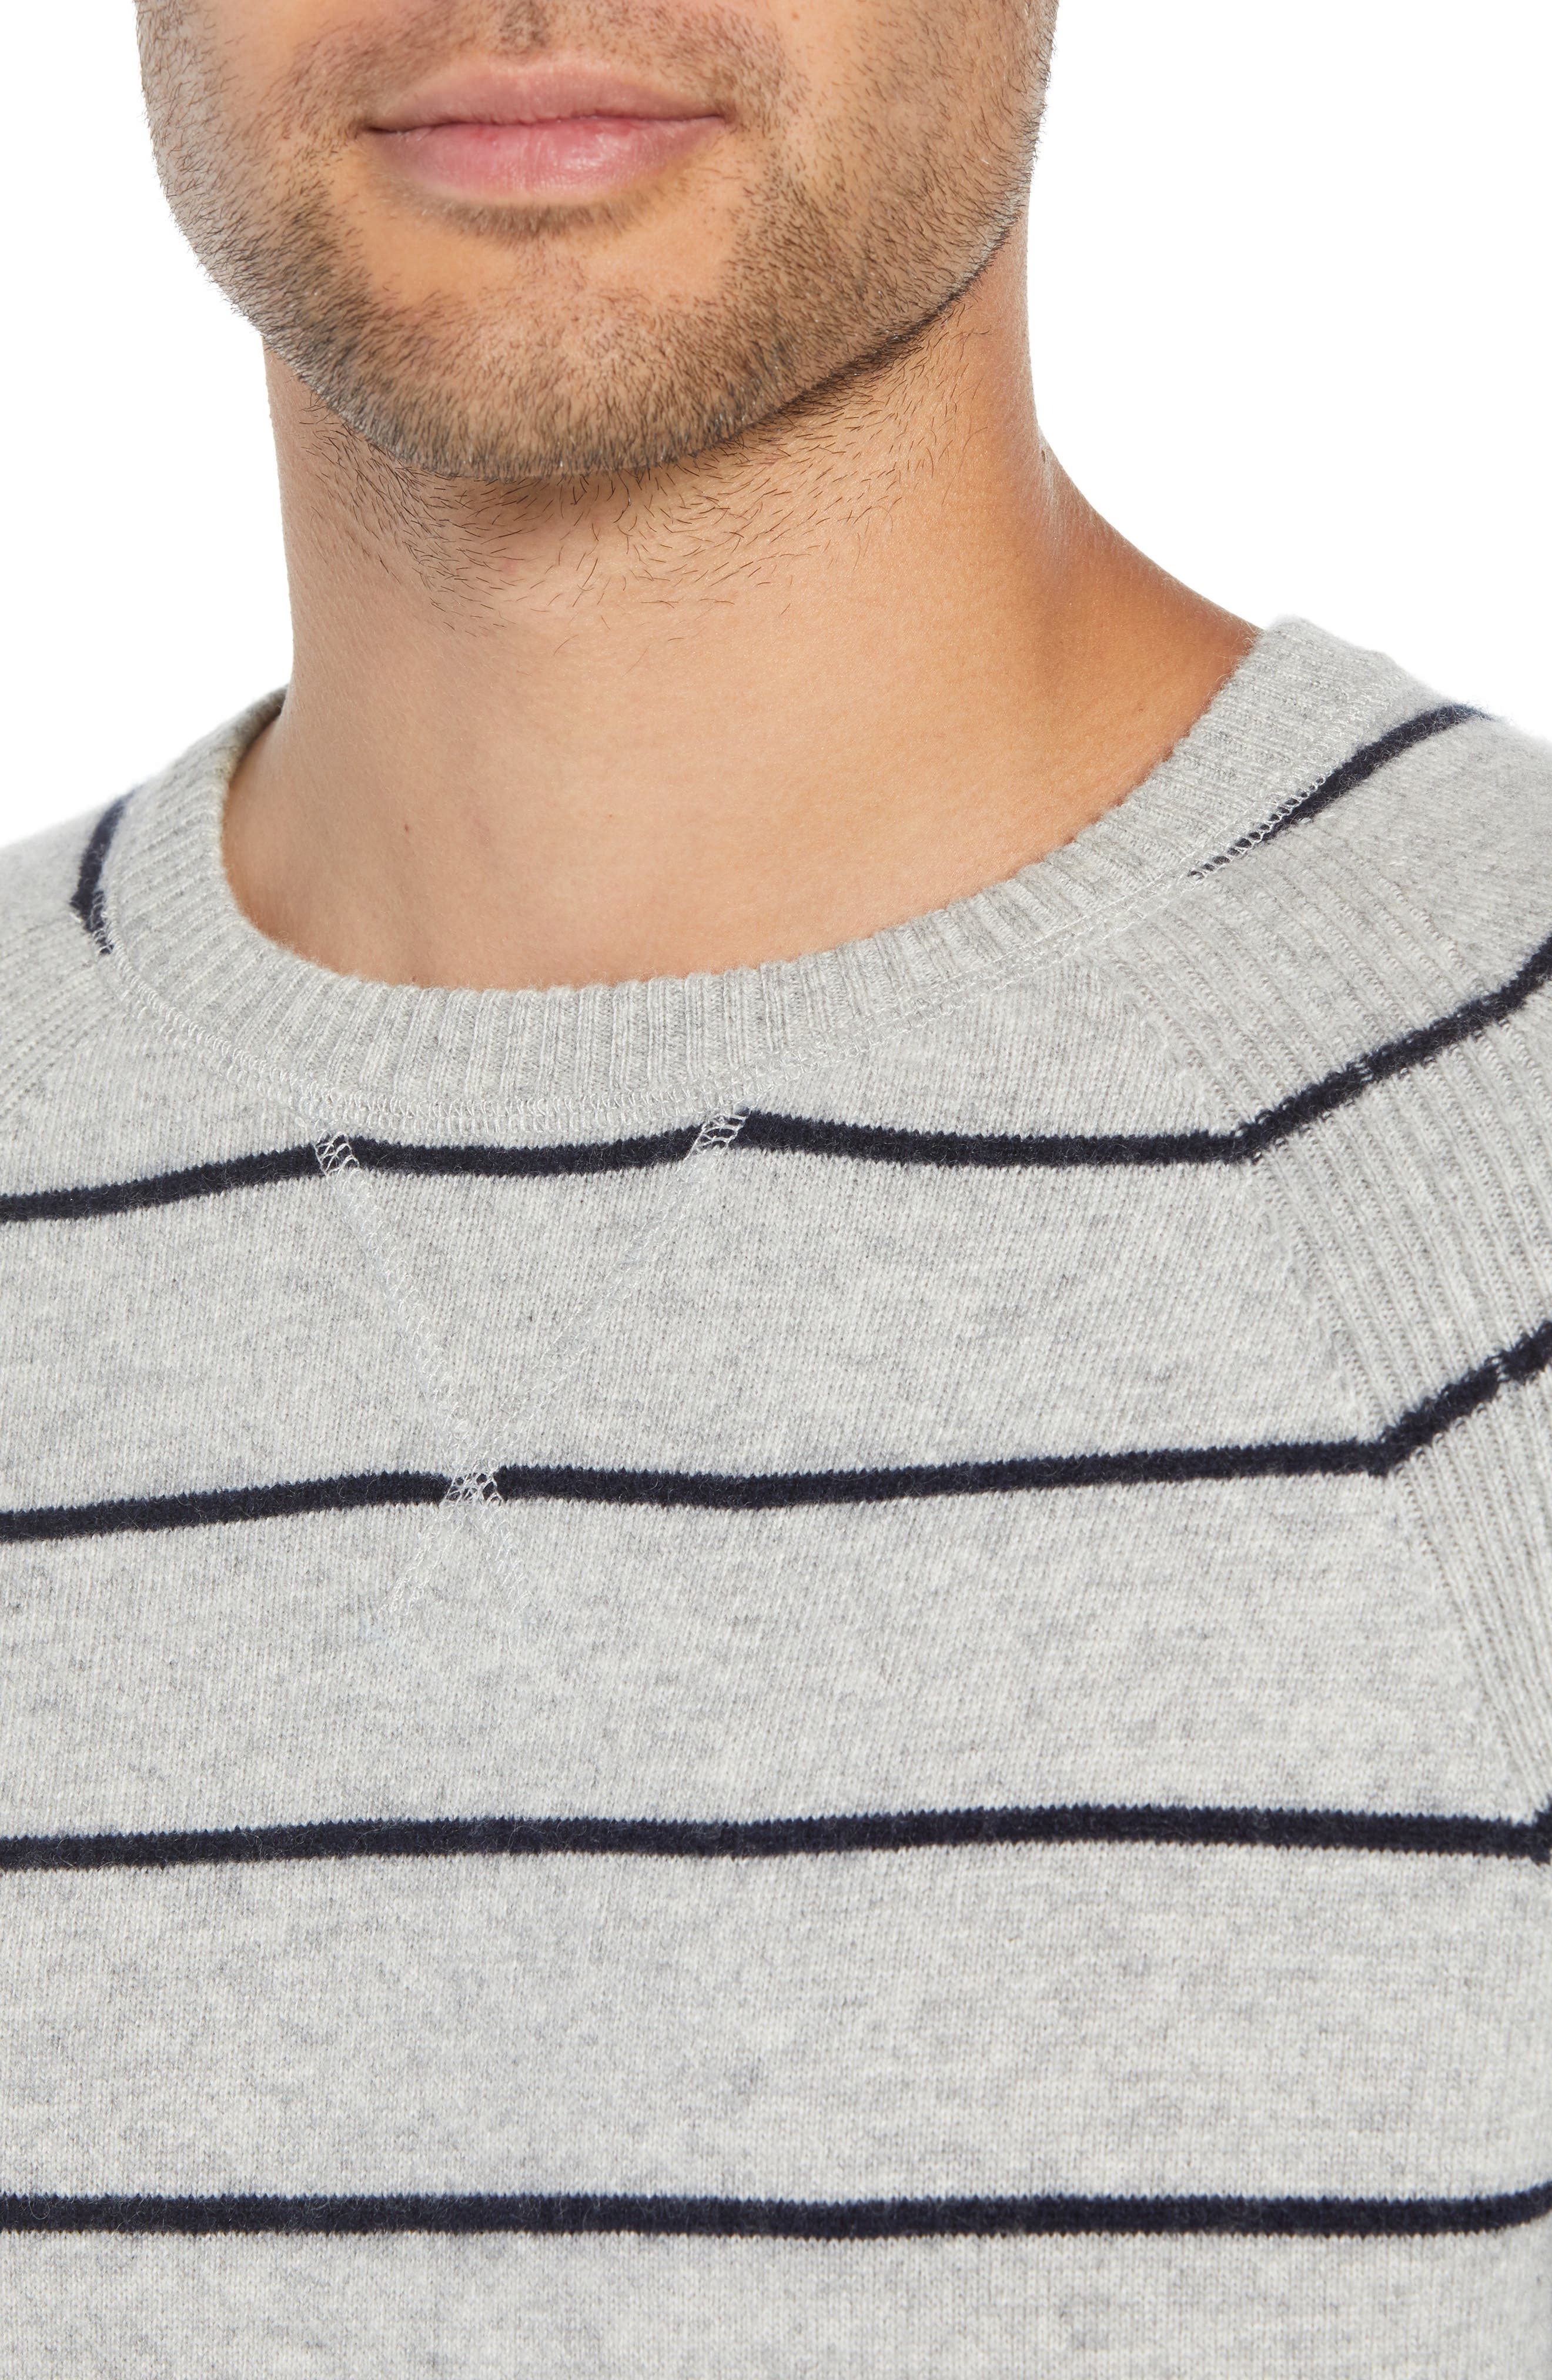 Caleb Stripe Cashmere Sweater,                             Alternate thumbnail 4, color,                             LIGHT HEATHER GREY/ NAVY